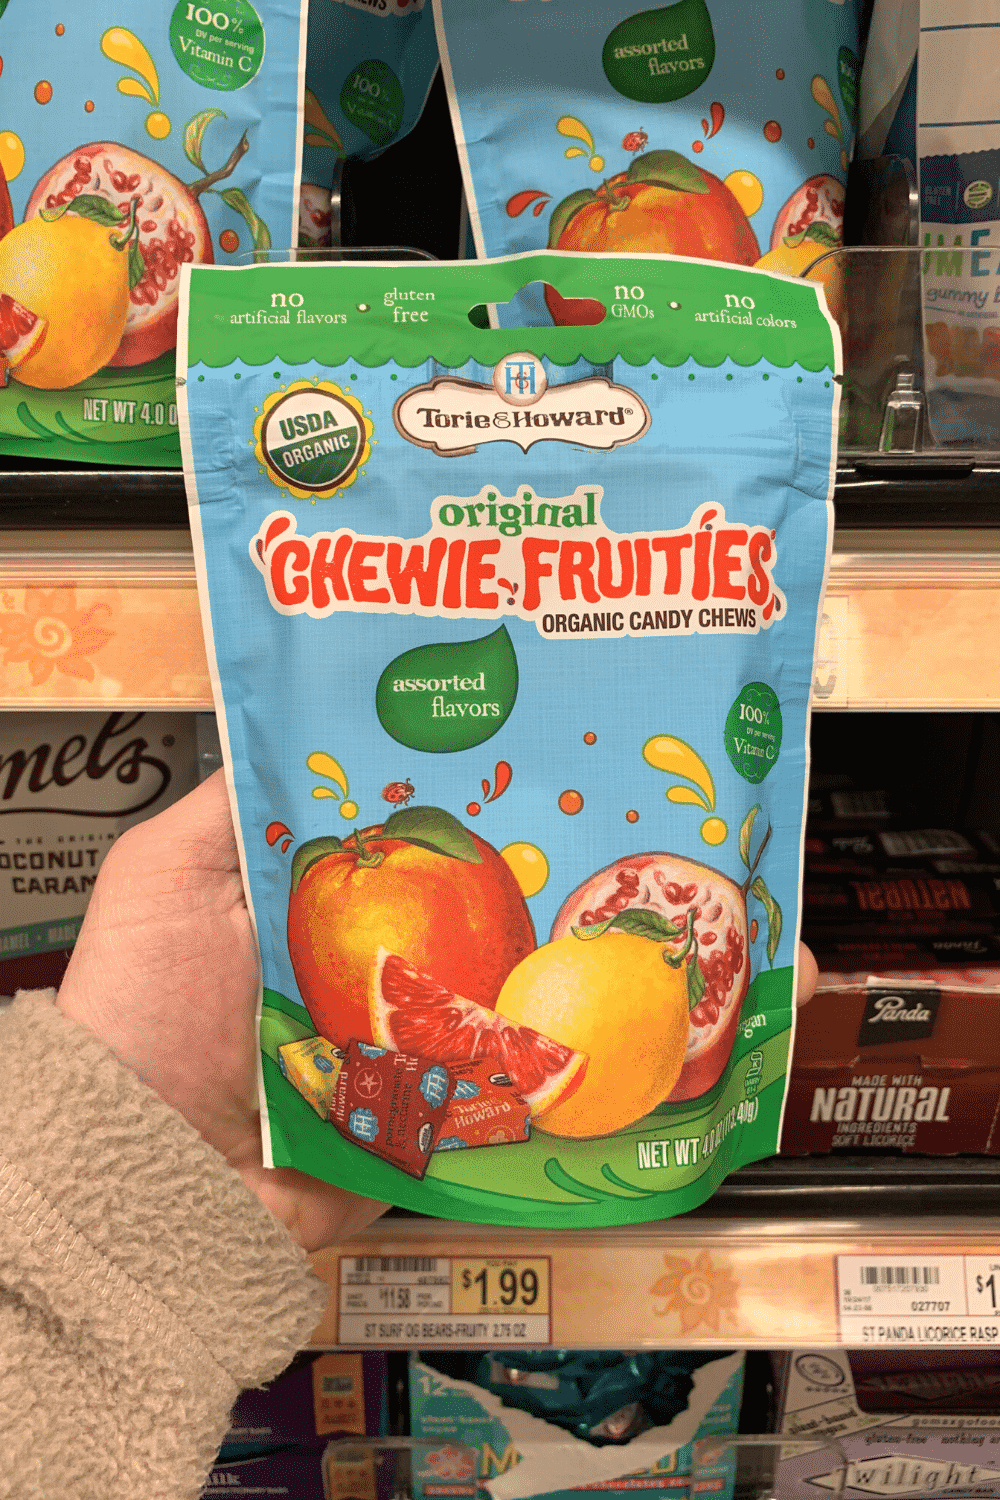 A hand holding a package of Torie and Howard original Chewie Fruities